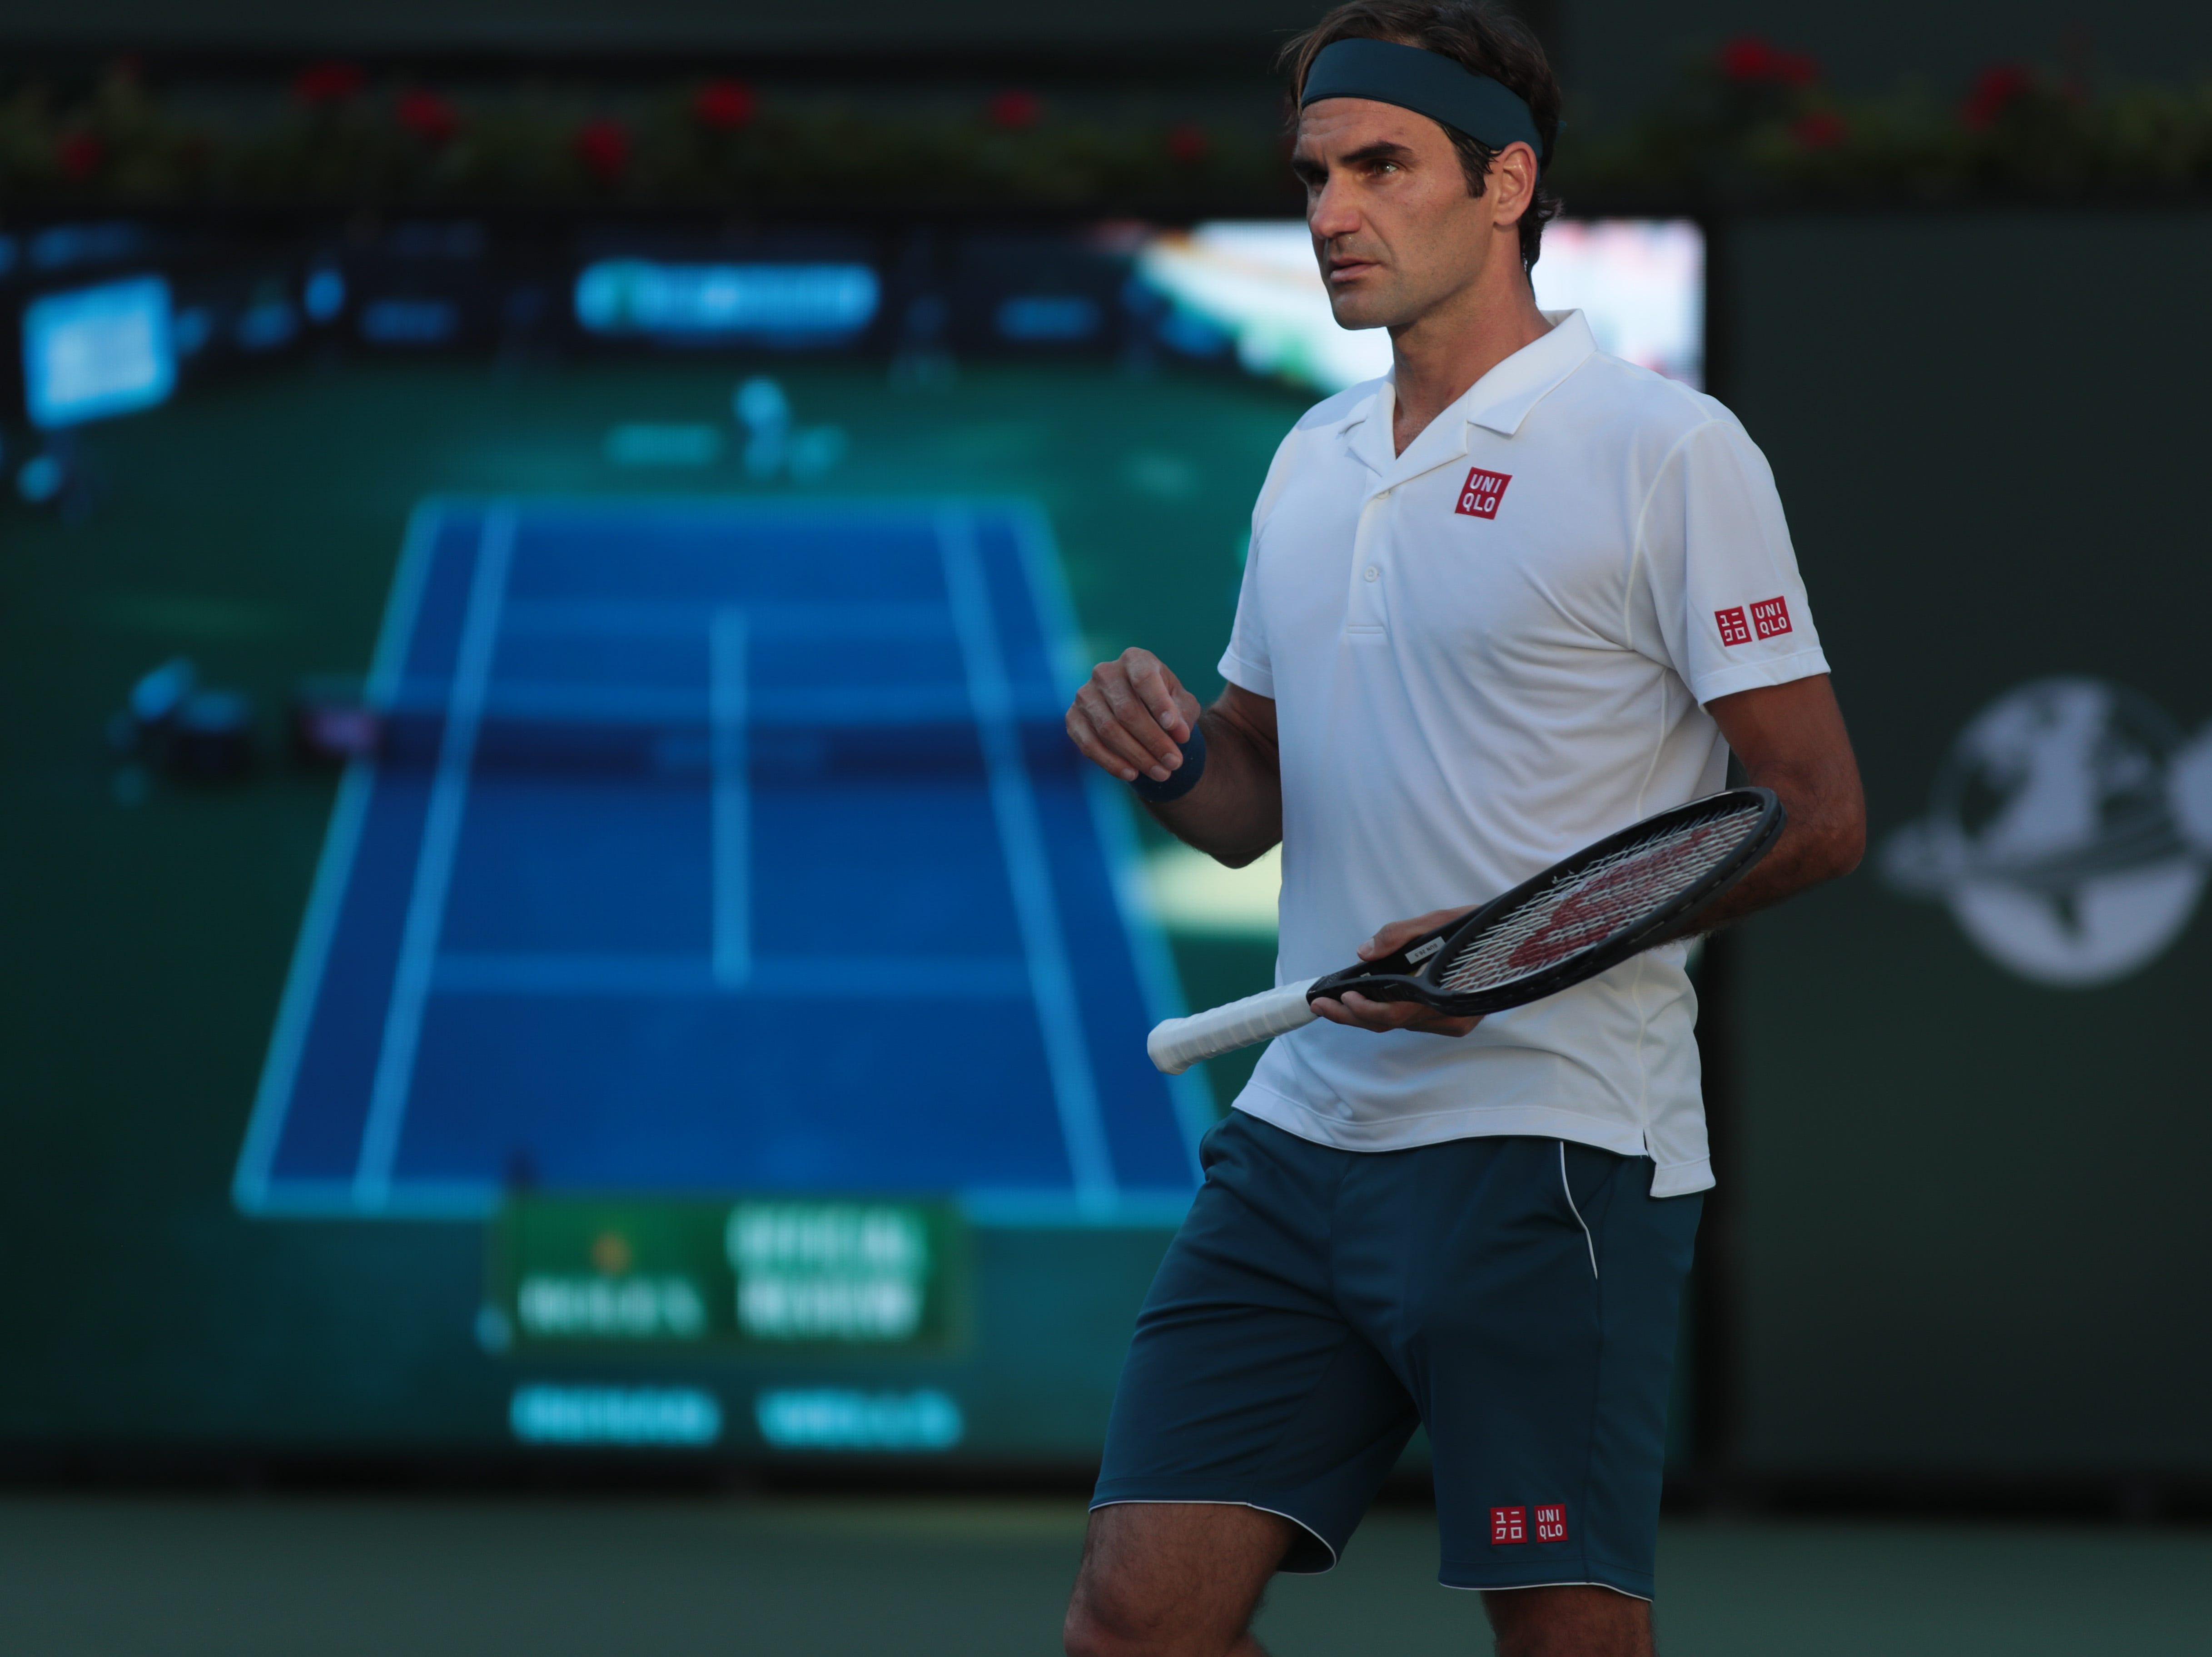 Roger Federer looks to the chair umpire after a call in the finals of the BNP Paribas Open in Indian Wells, Calif., March 17, 2019.